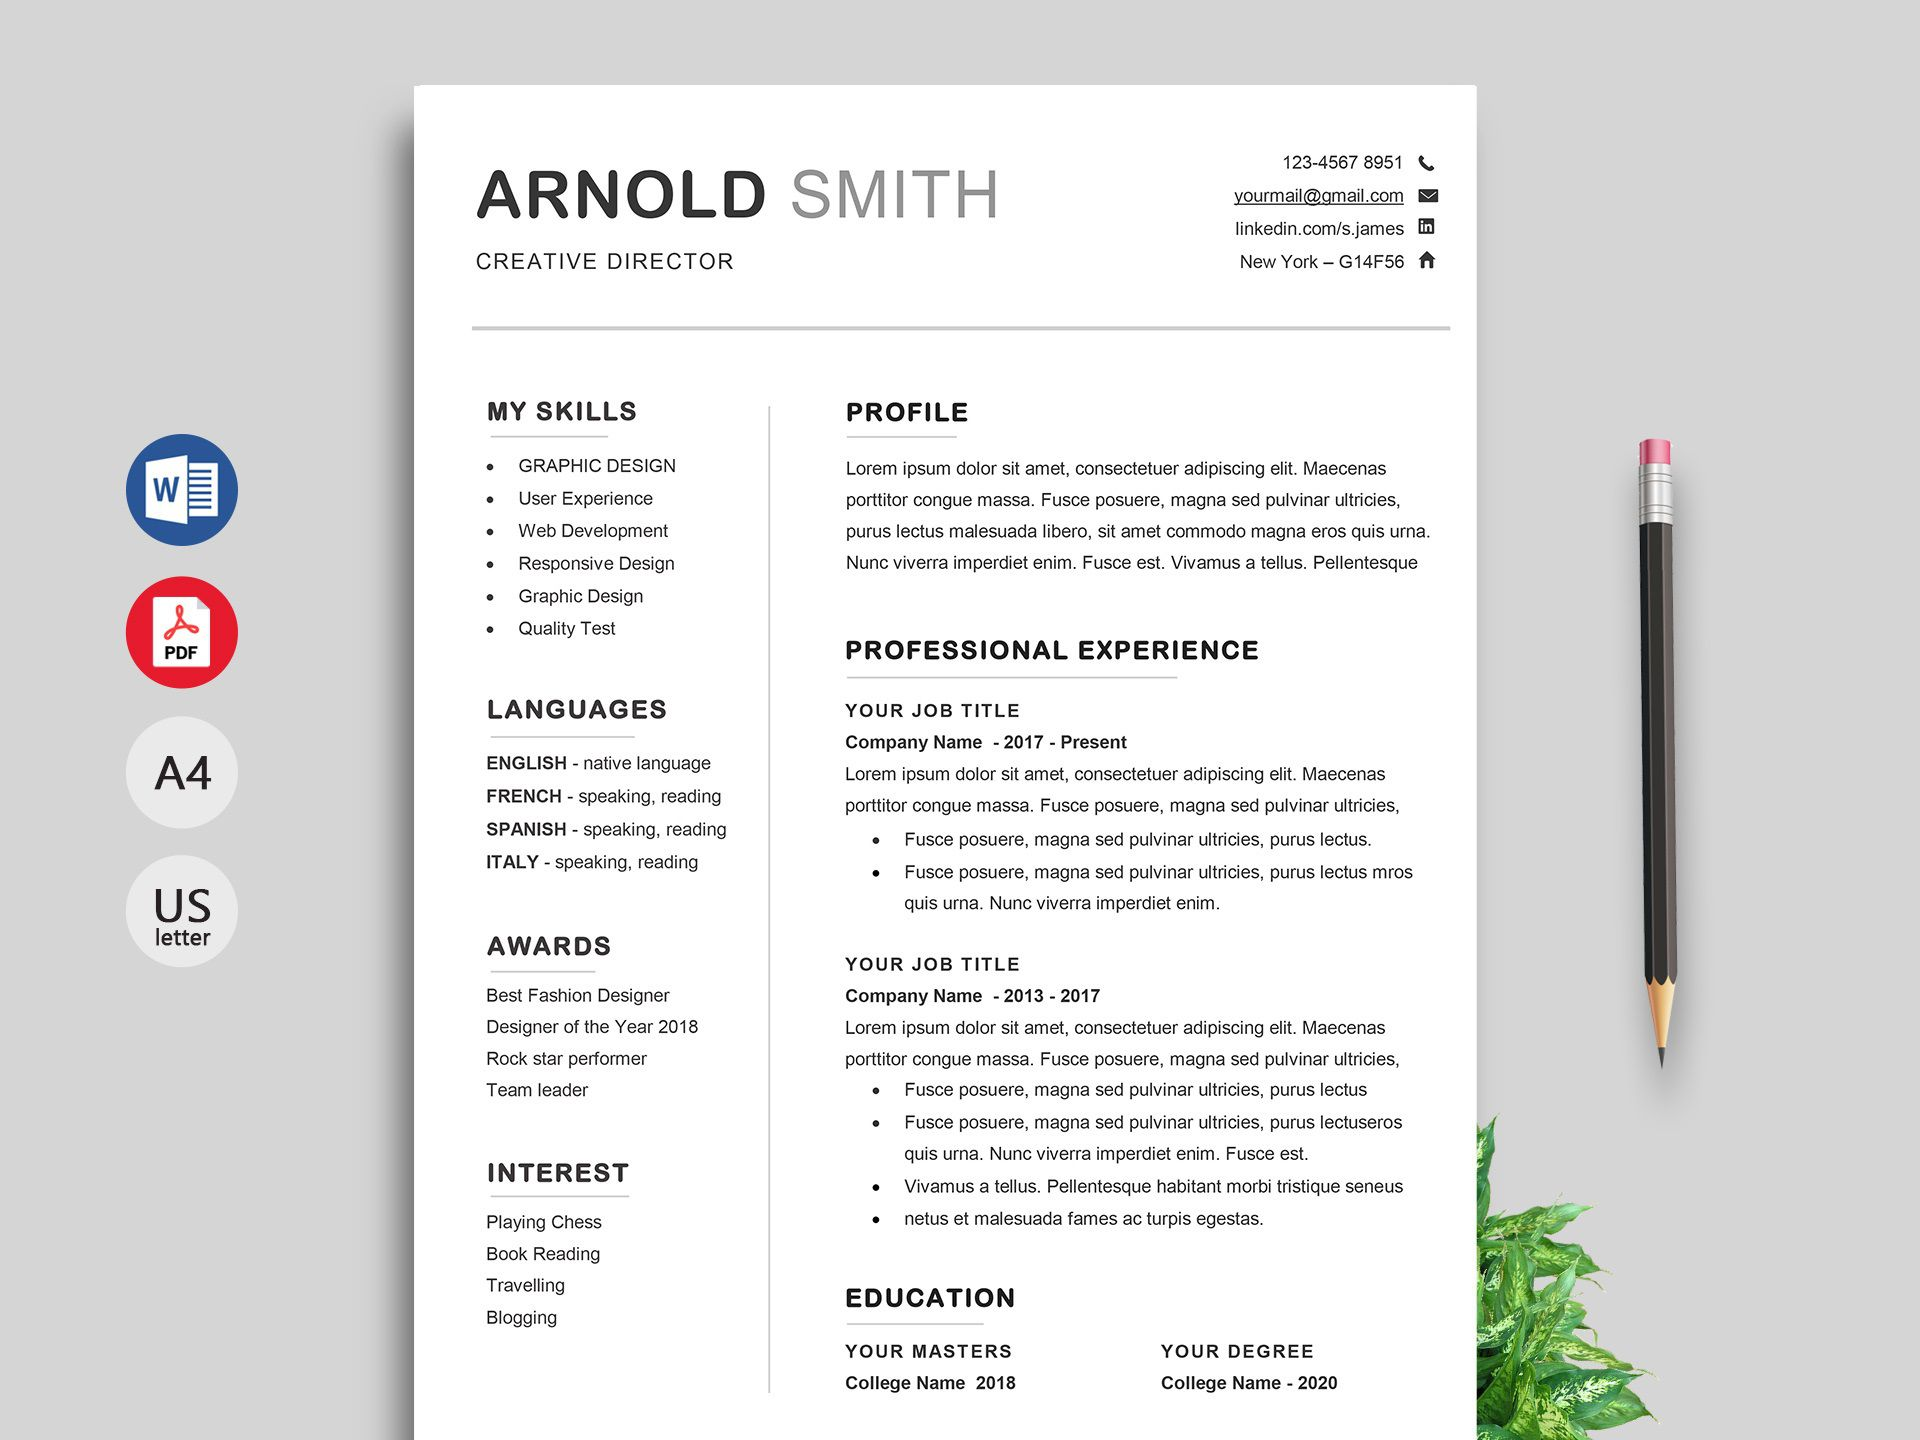 000 Phenomenal Free Resume Download Template Photo  2020 Word Document Microsoft 2010Full